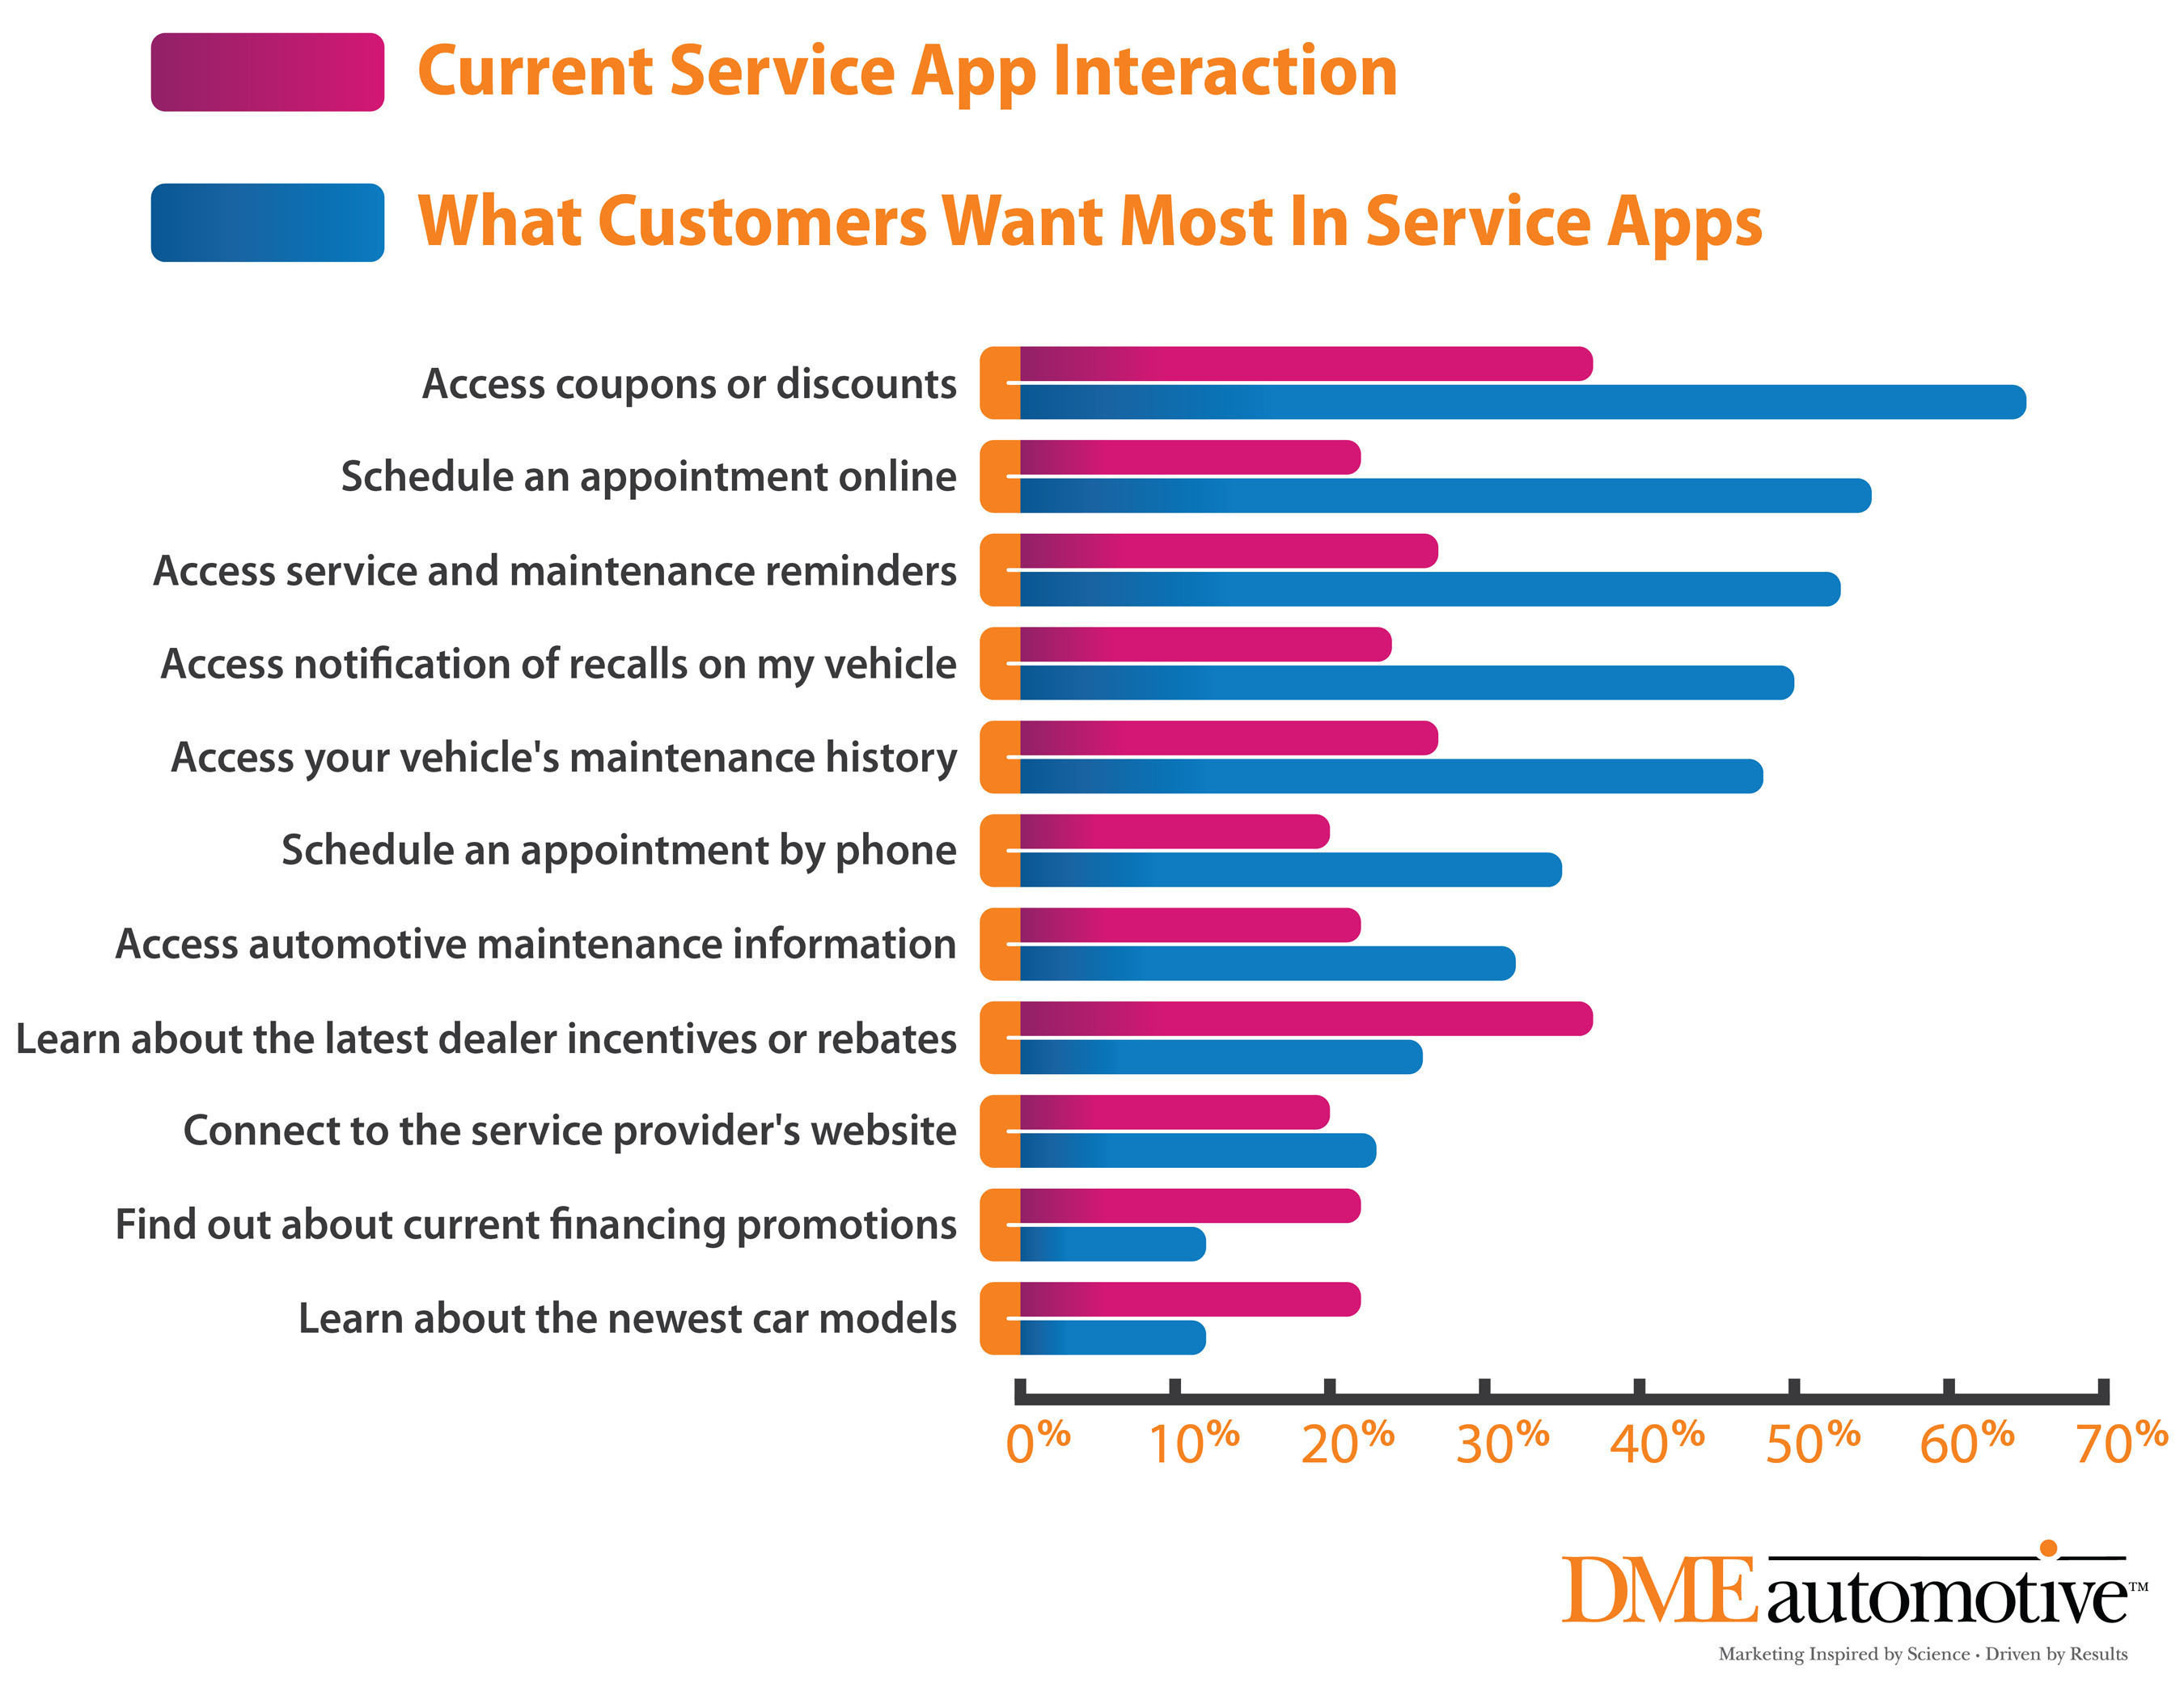 New Research on QR Codes and Mobile Apps: What Consumers Want